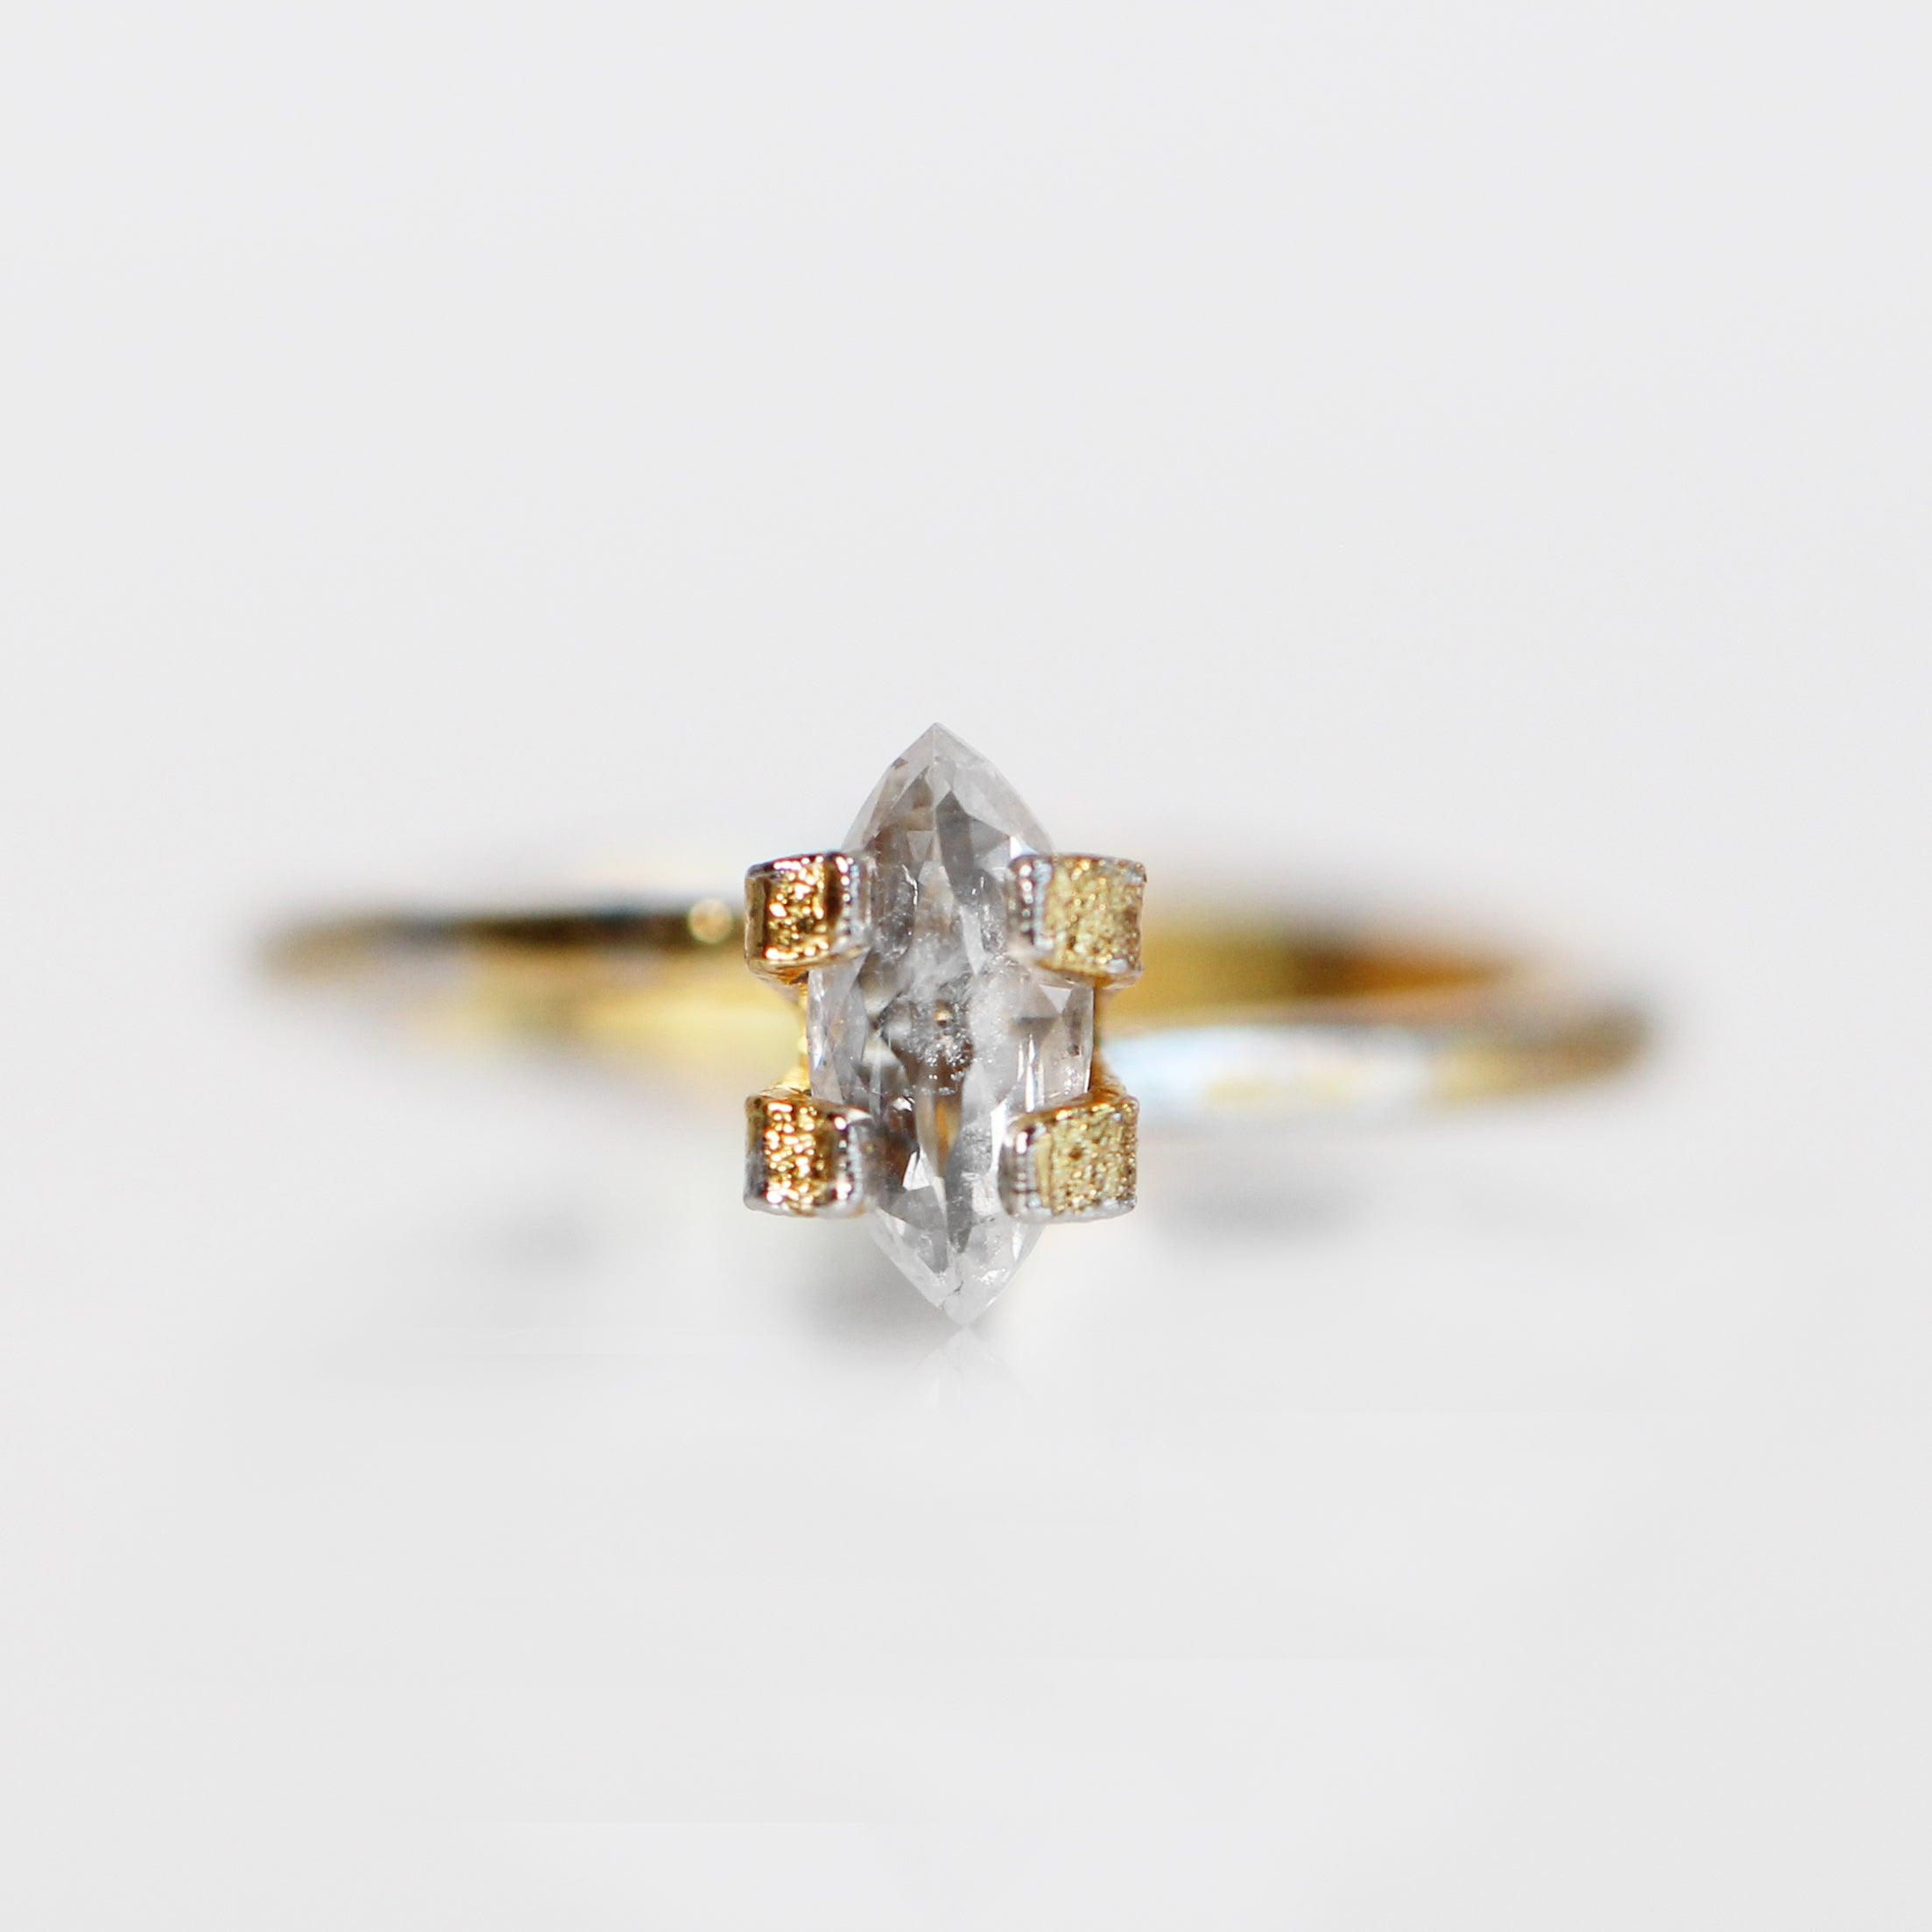 .37 Carat Marquise Celestial Diamond for Custom Work - Inventory Code MRC37 - Celestial Diamonds ® by Midwinter Co.